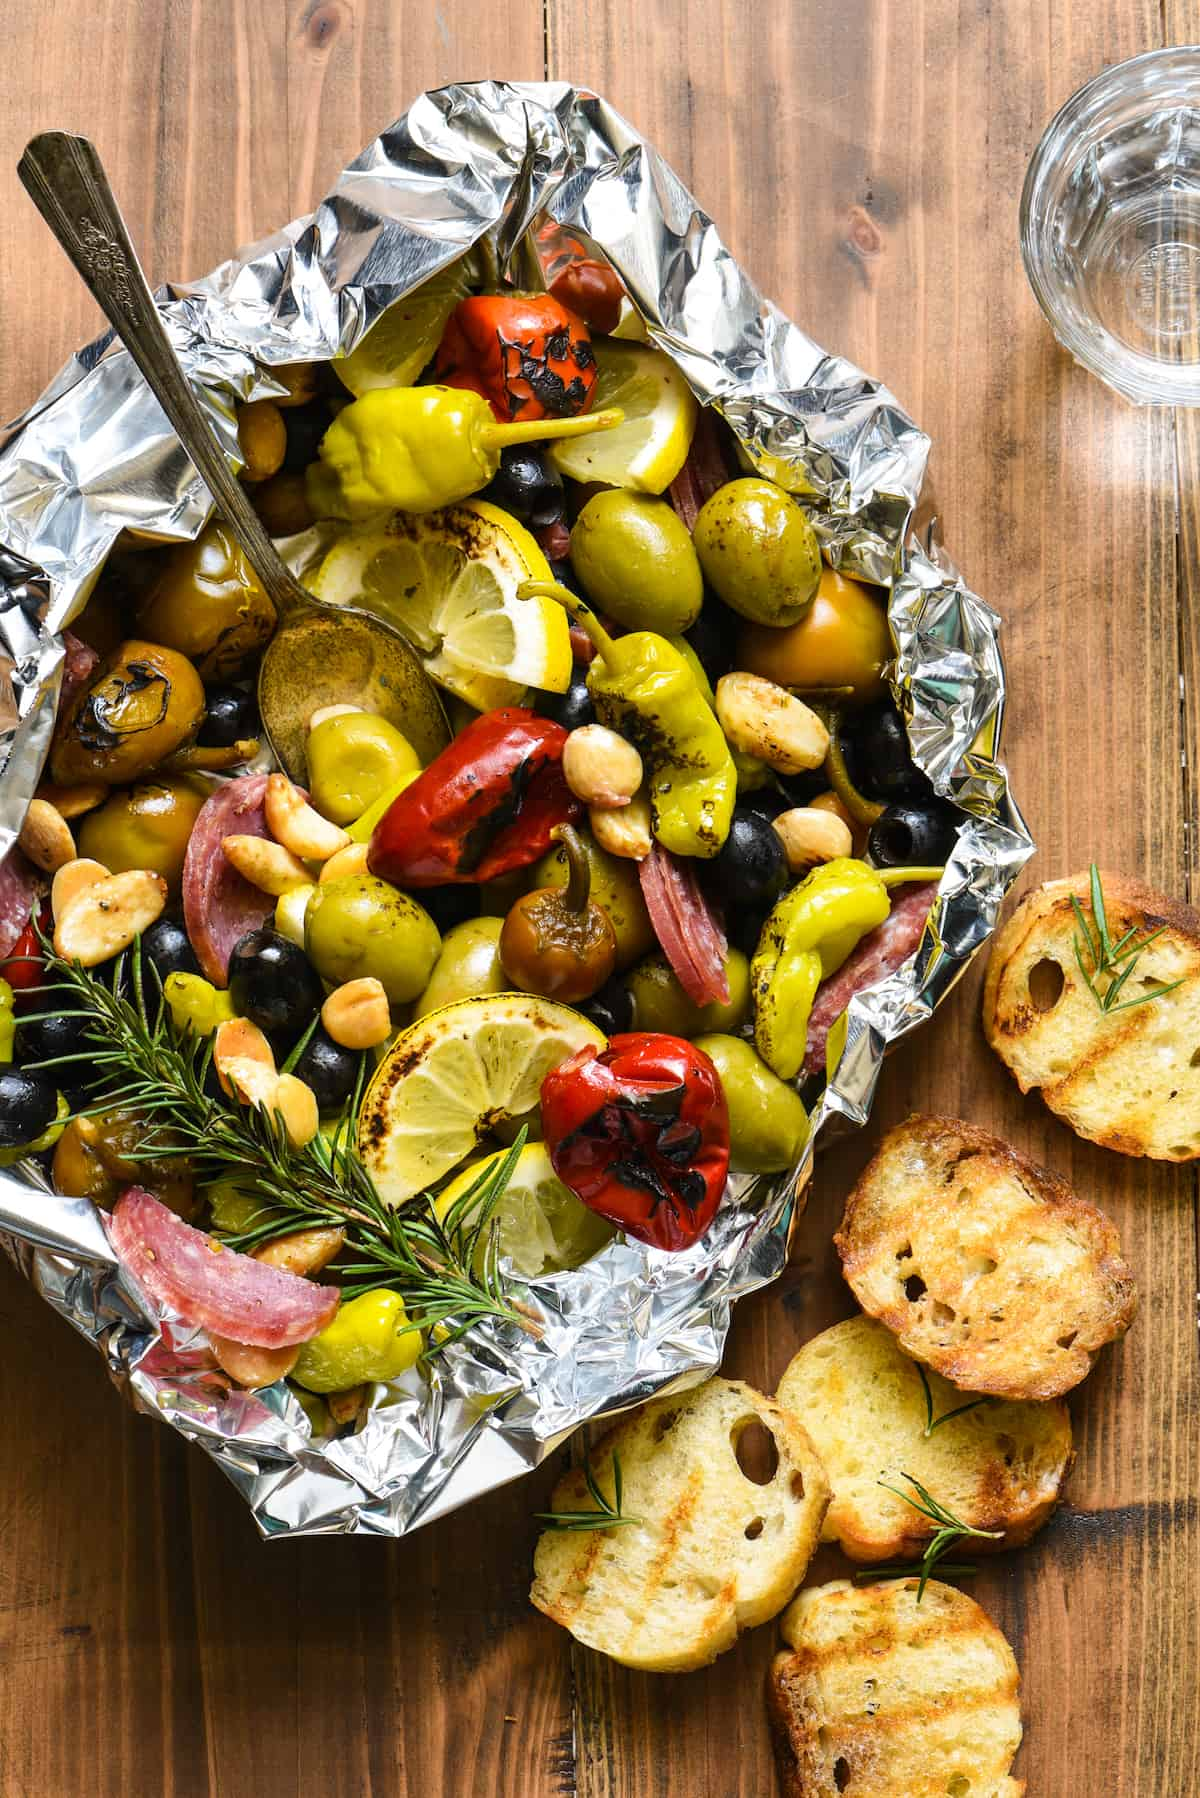 Fill a foil packet with olives, peppers, nuts and salami and throw it on the grill! This Grill-Roasted Antipasto will be the easiest summer appetizer you'll ever make! | foxeslovelemons.com